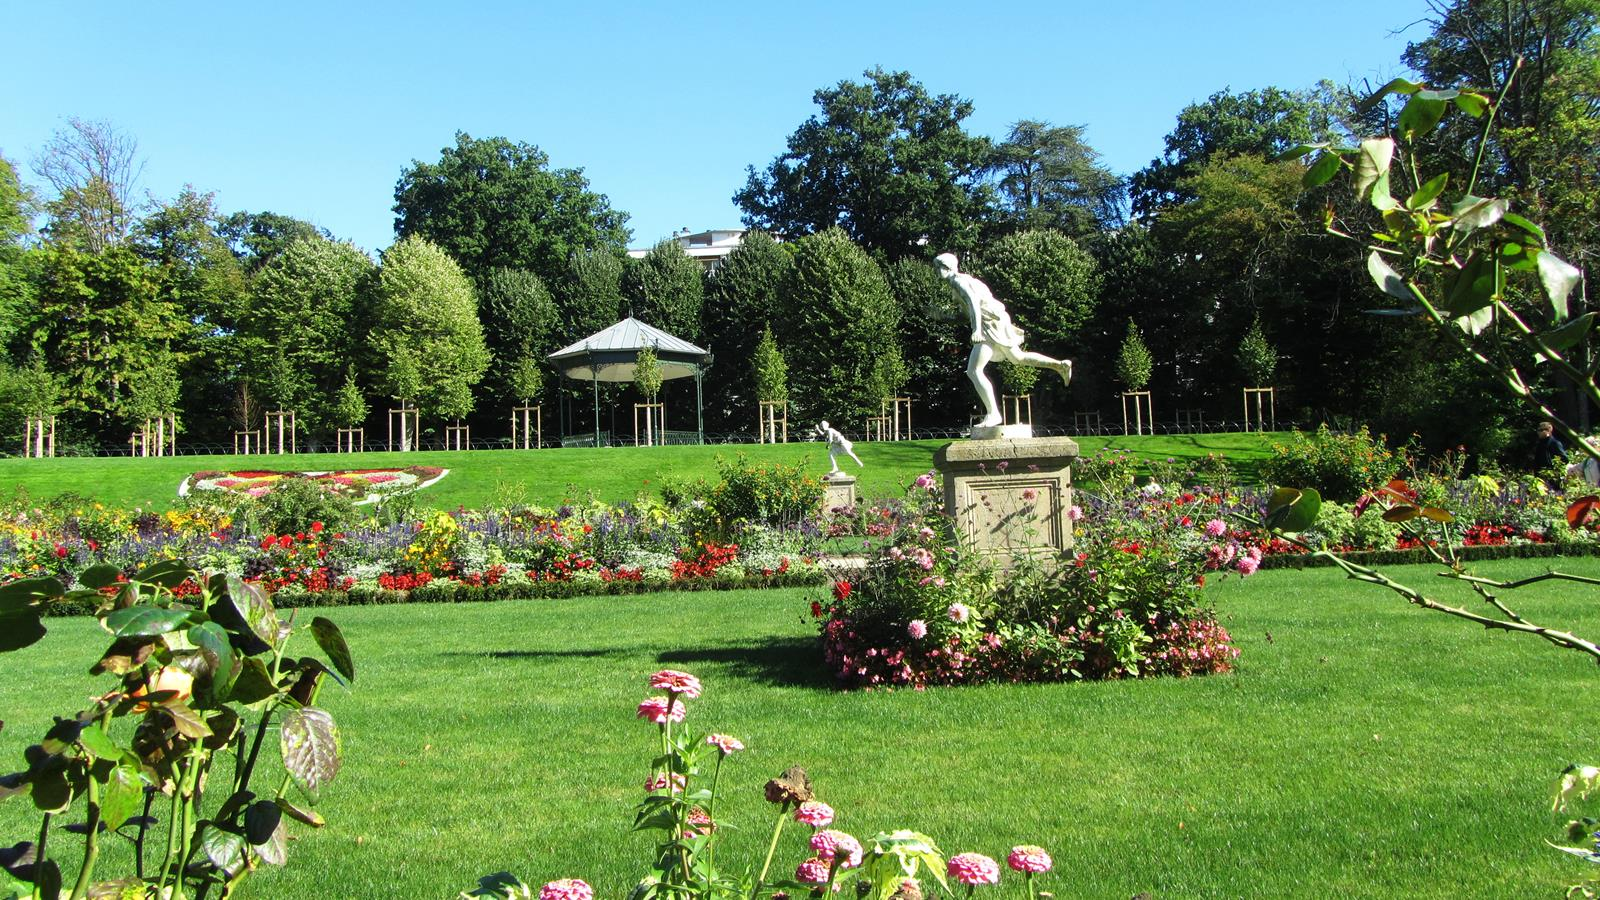 Paris for Le jardin de plantes